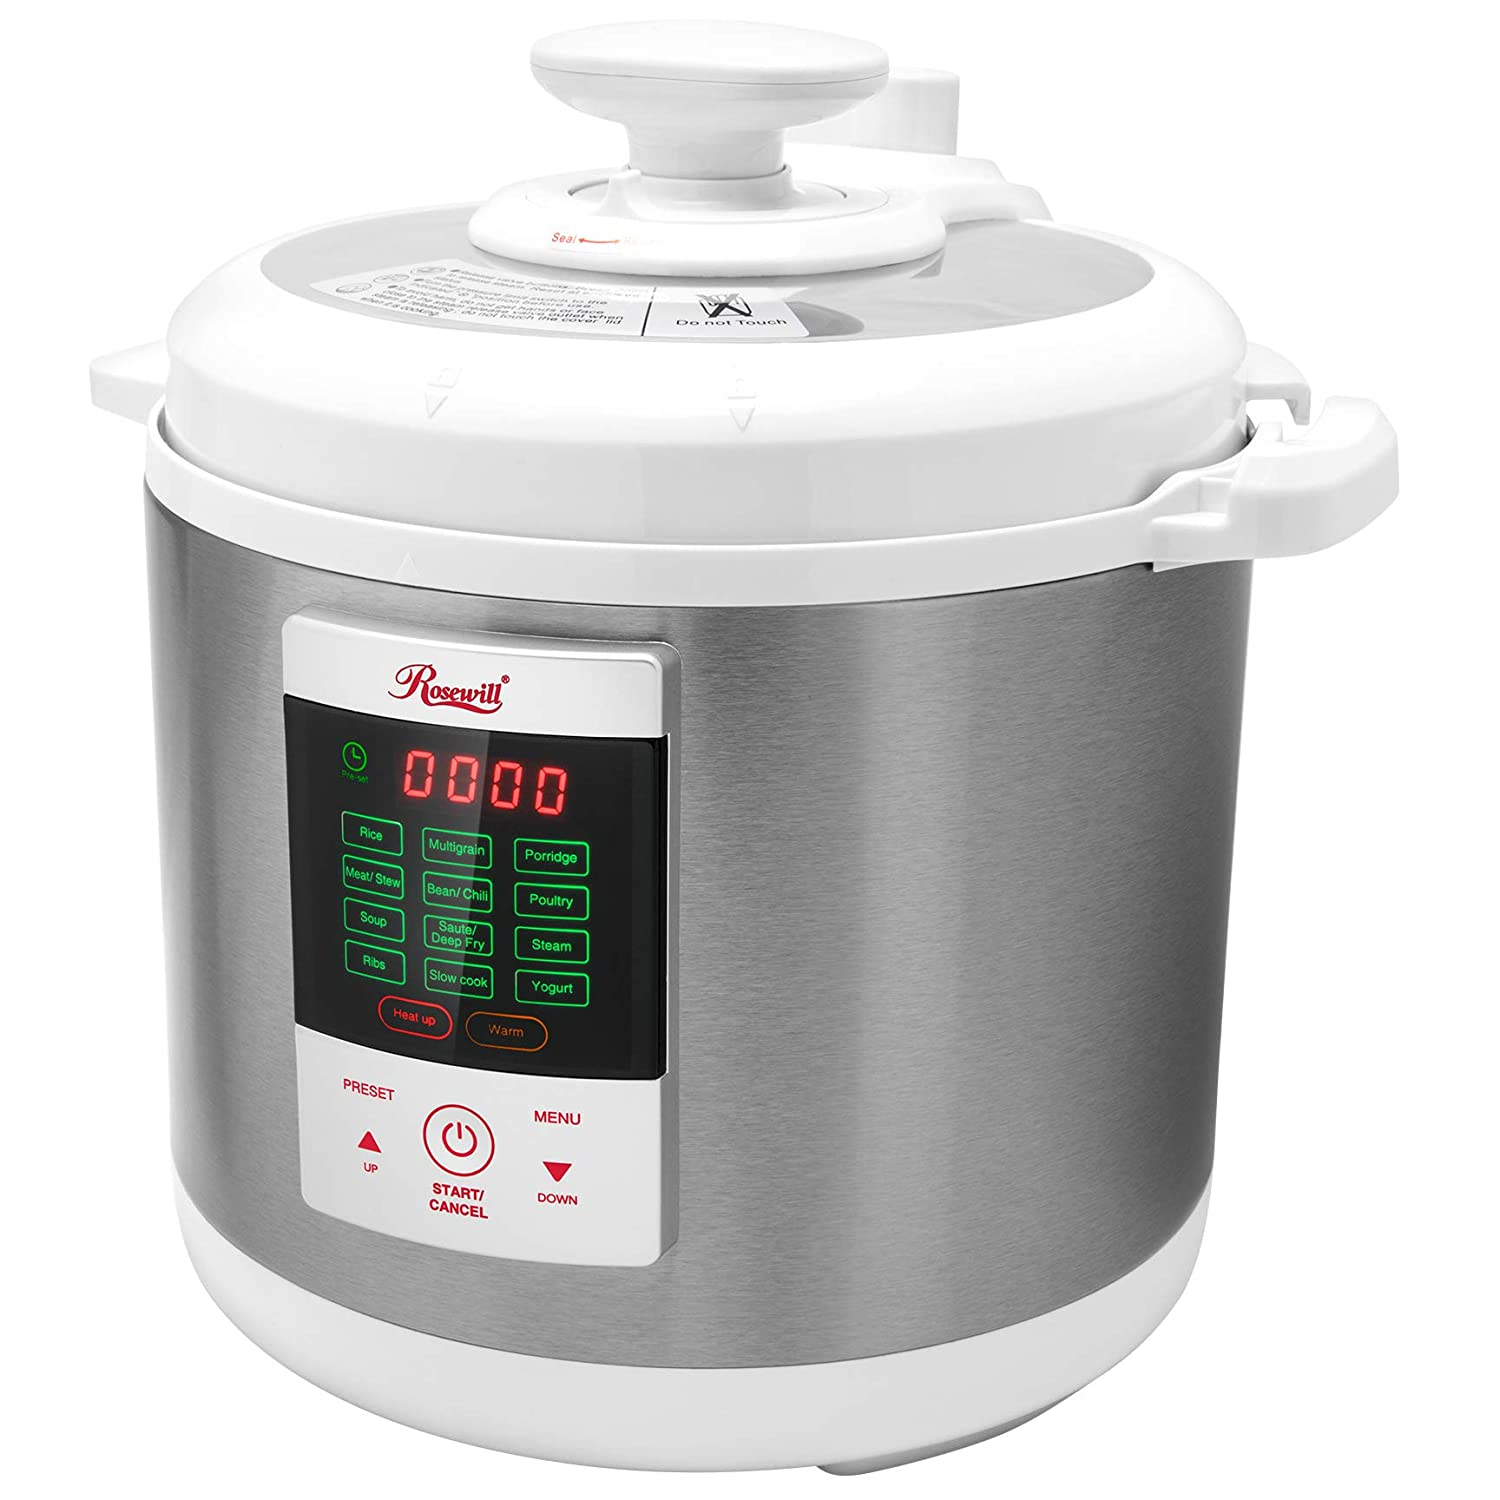 Rosewill RHPC-15001 6L Electric Pressure Cooker